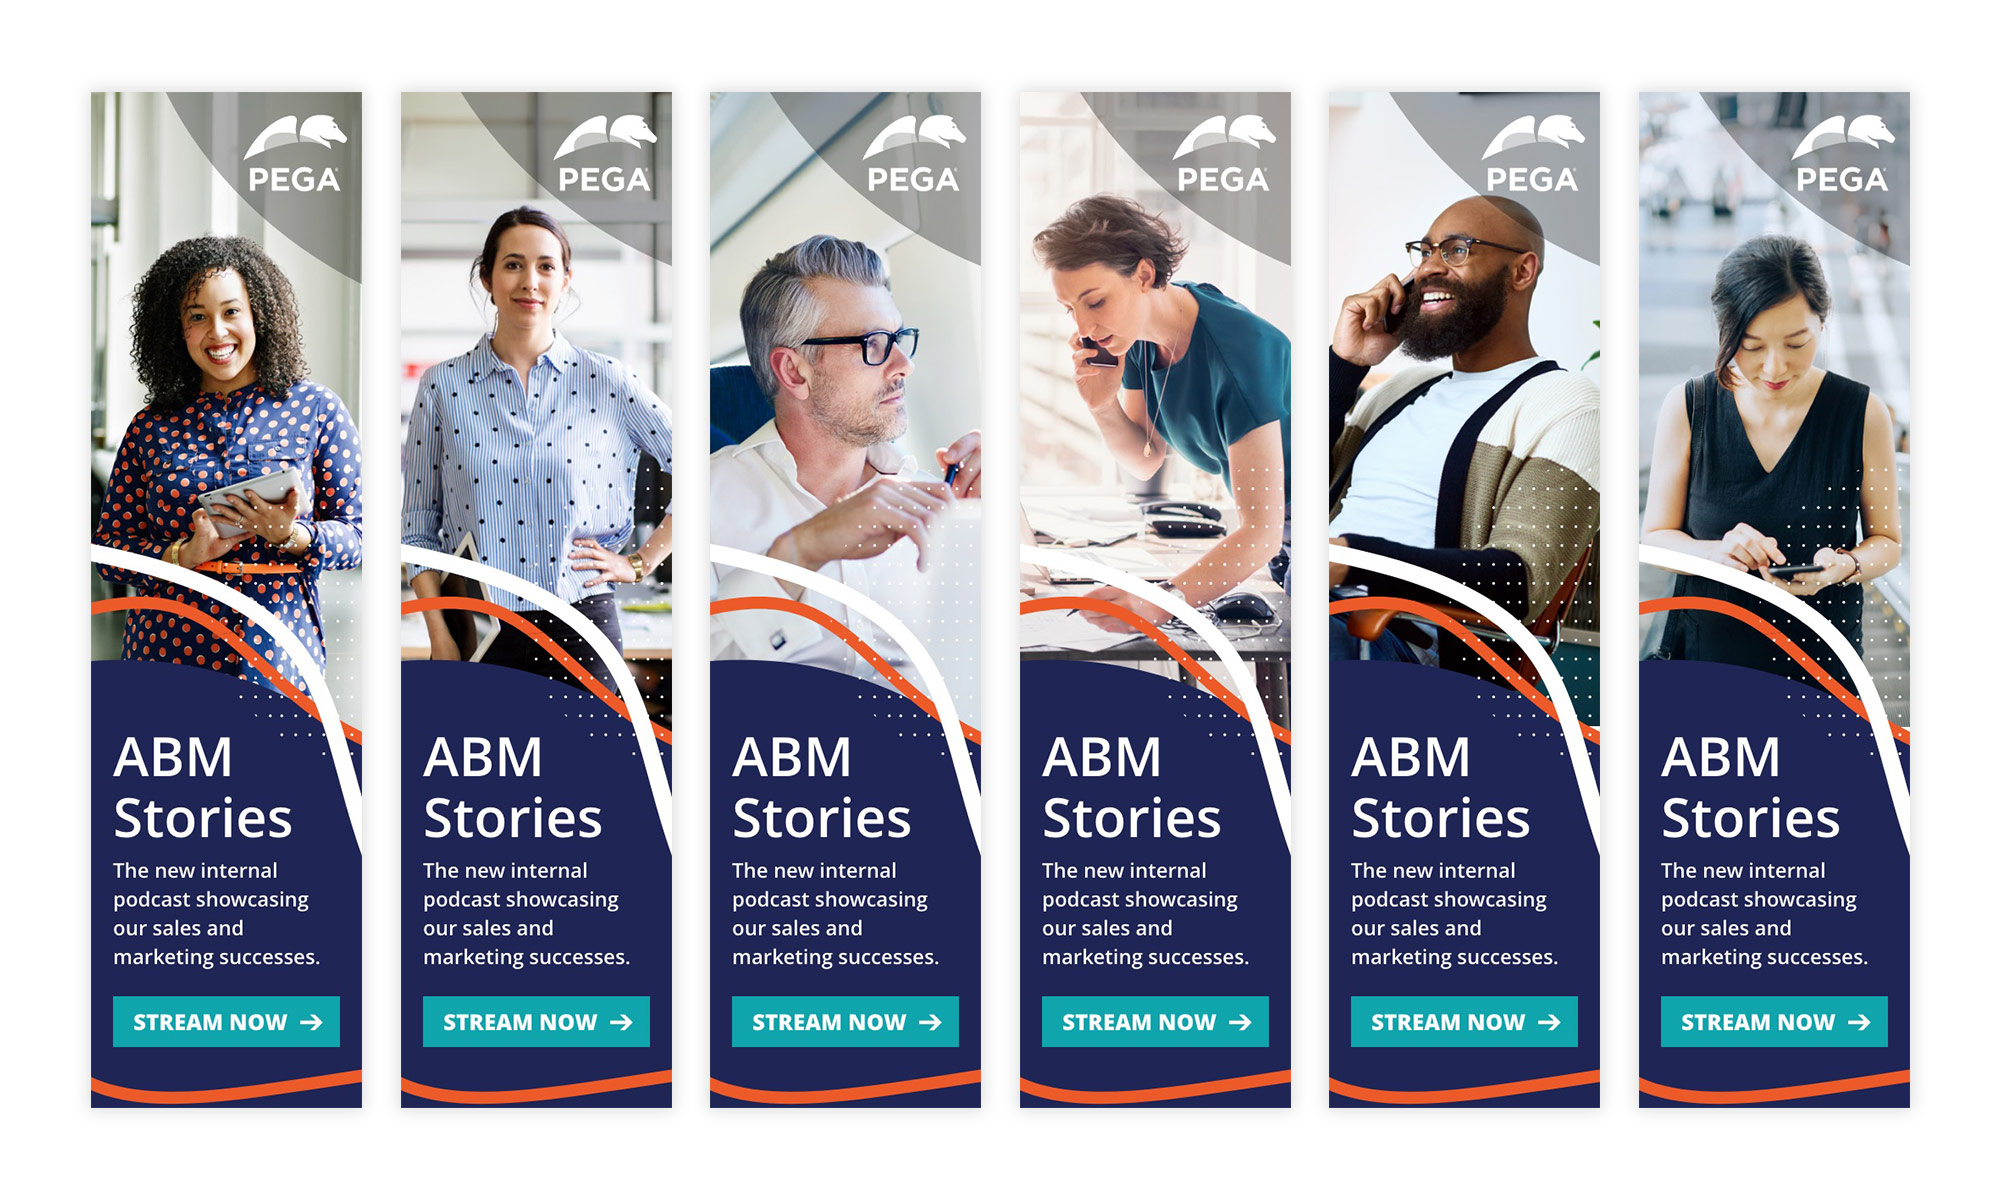 <strong>PEGA</strong> ABM Stories campaign banners